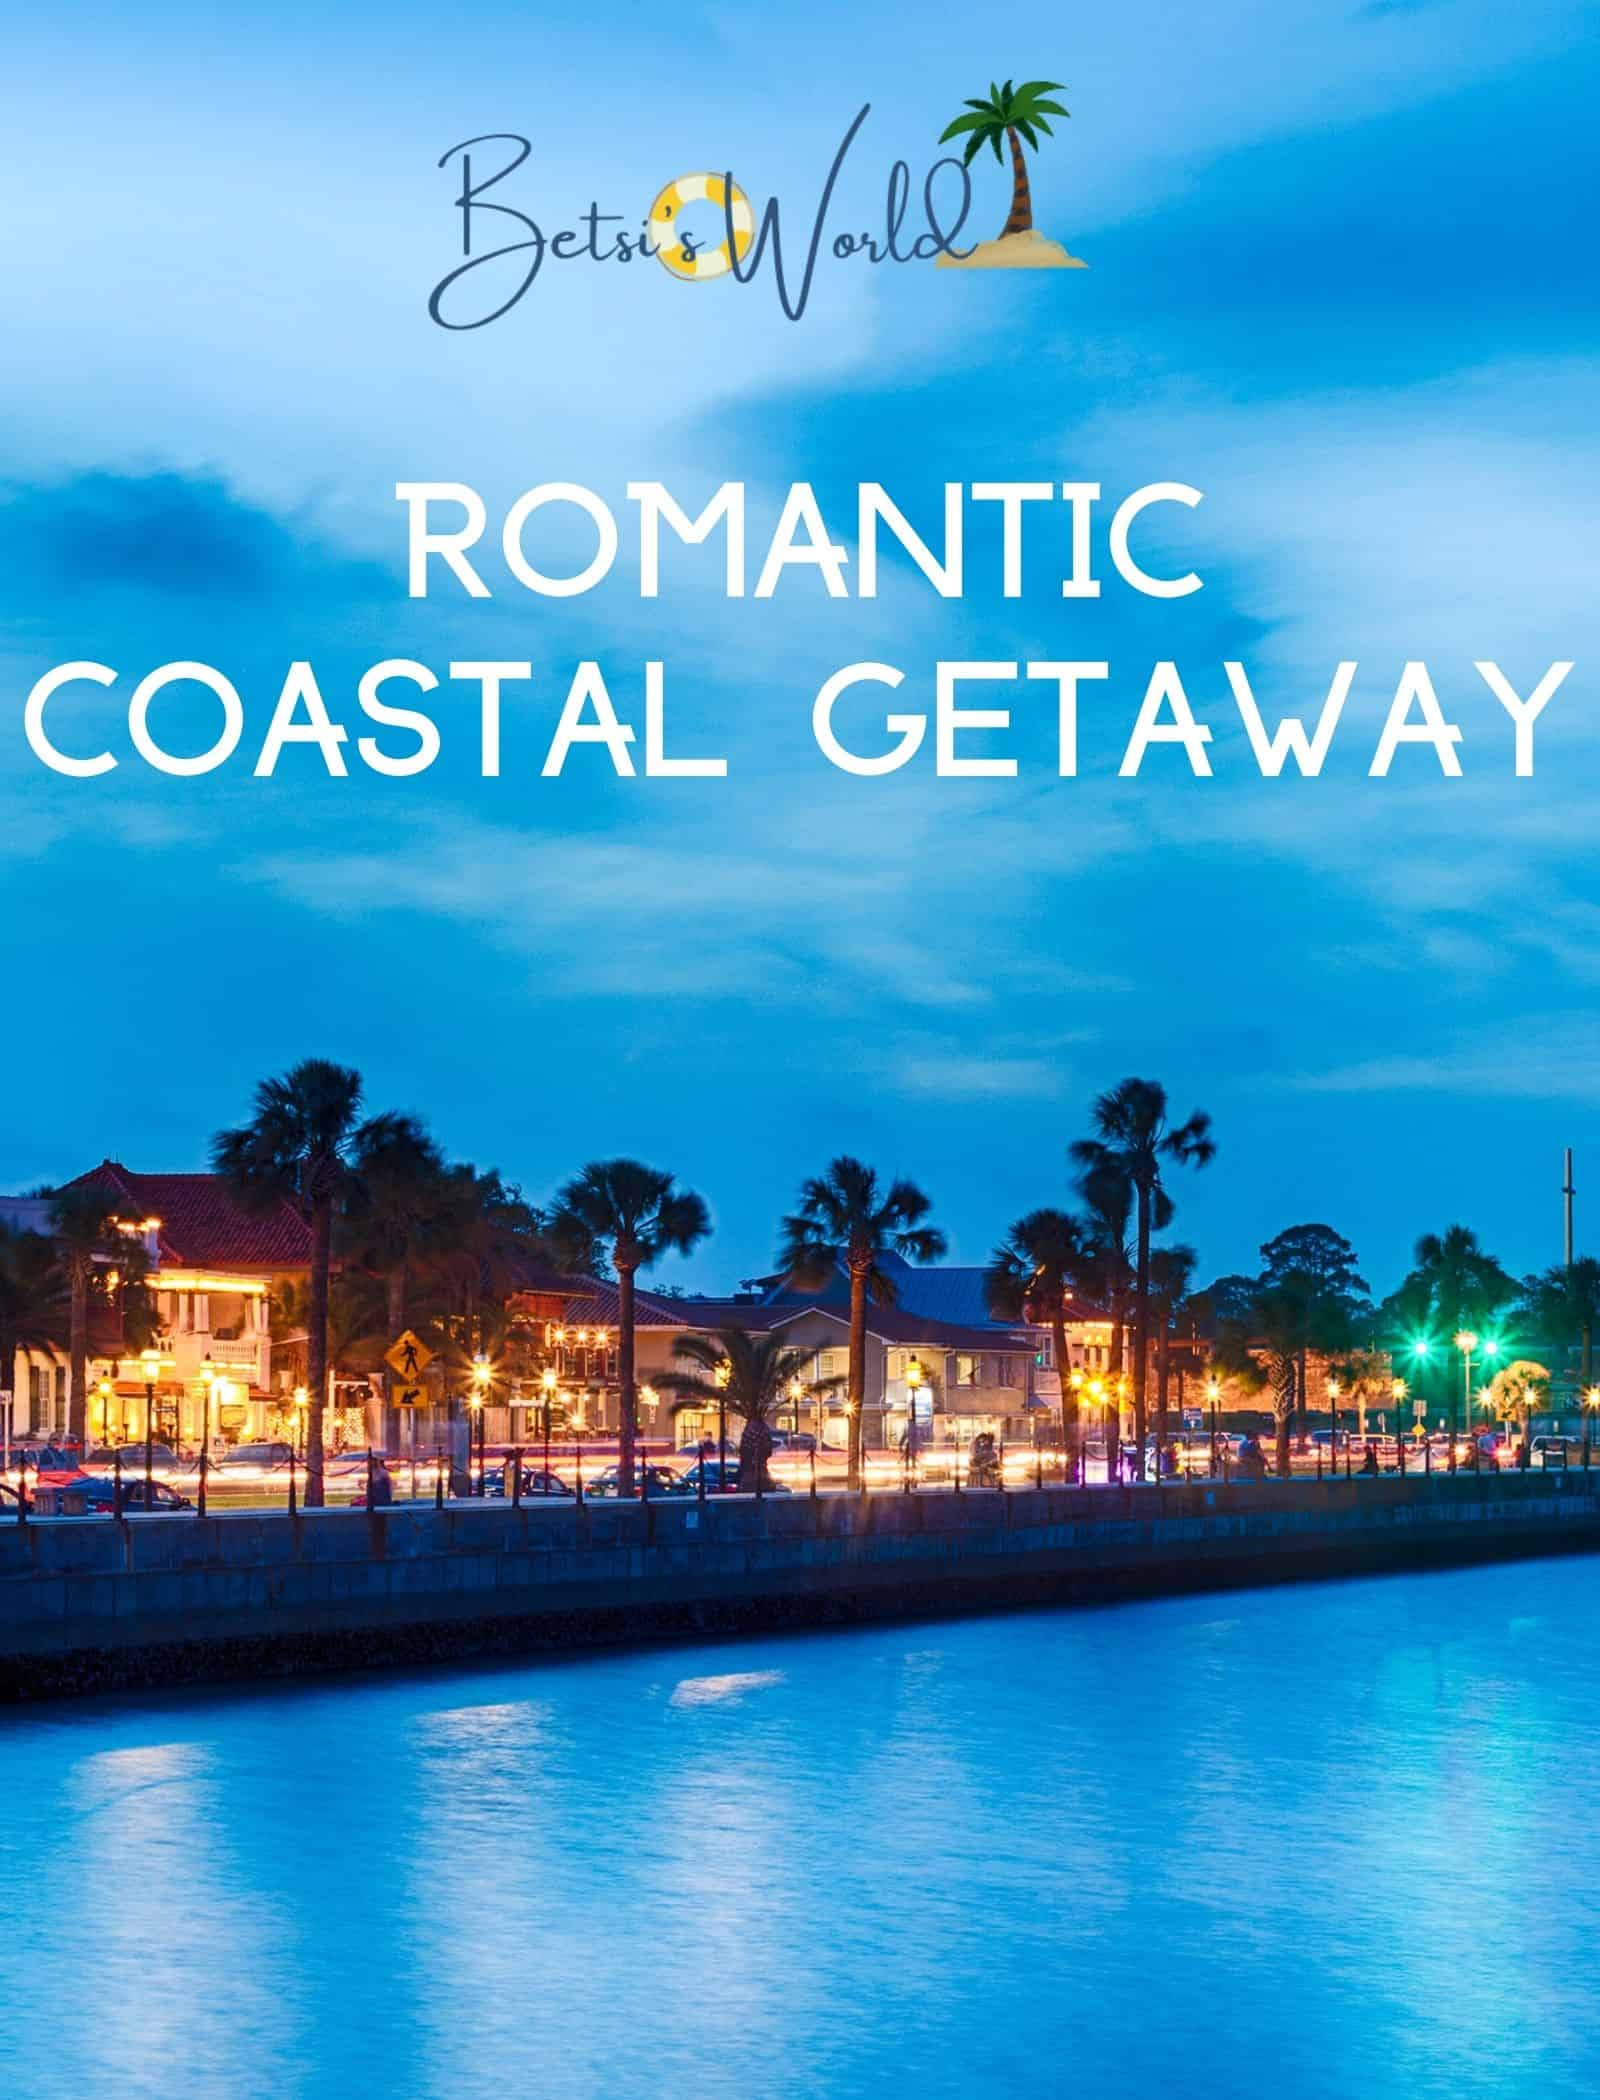 Looking for a romantic coastal holiday getaway? St. Simons, Georgia, and St. Augustine, Florida fit the bill! #coastalgetaway #romanticgetaway #holidaygetaway